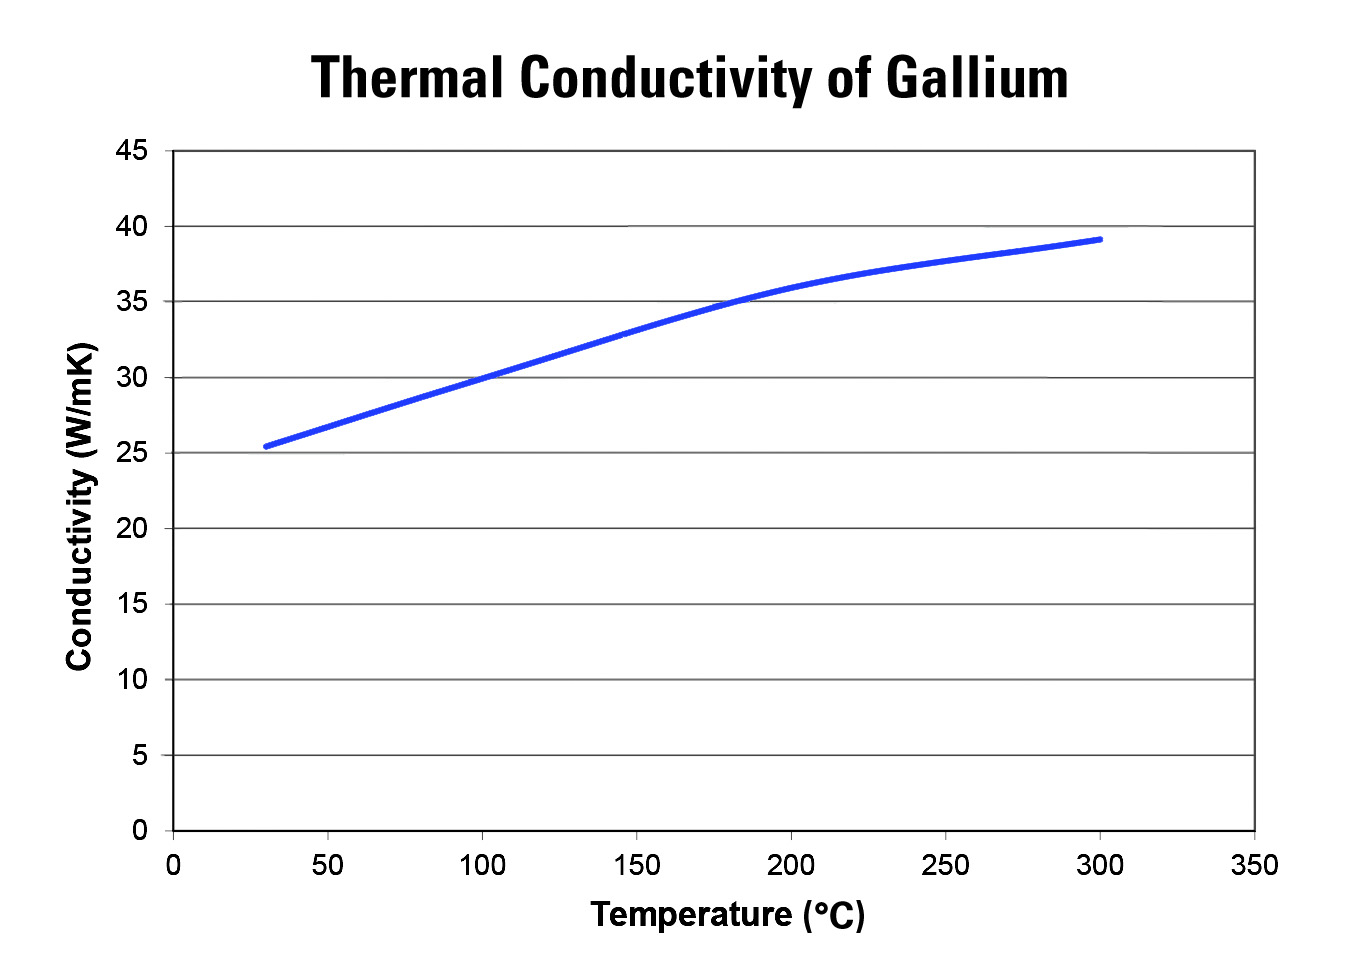 Chart of the Thermal Conductivity of Gallium